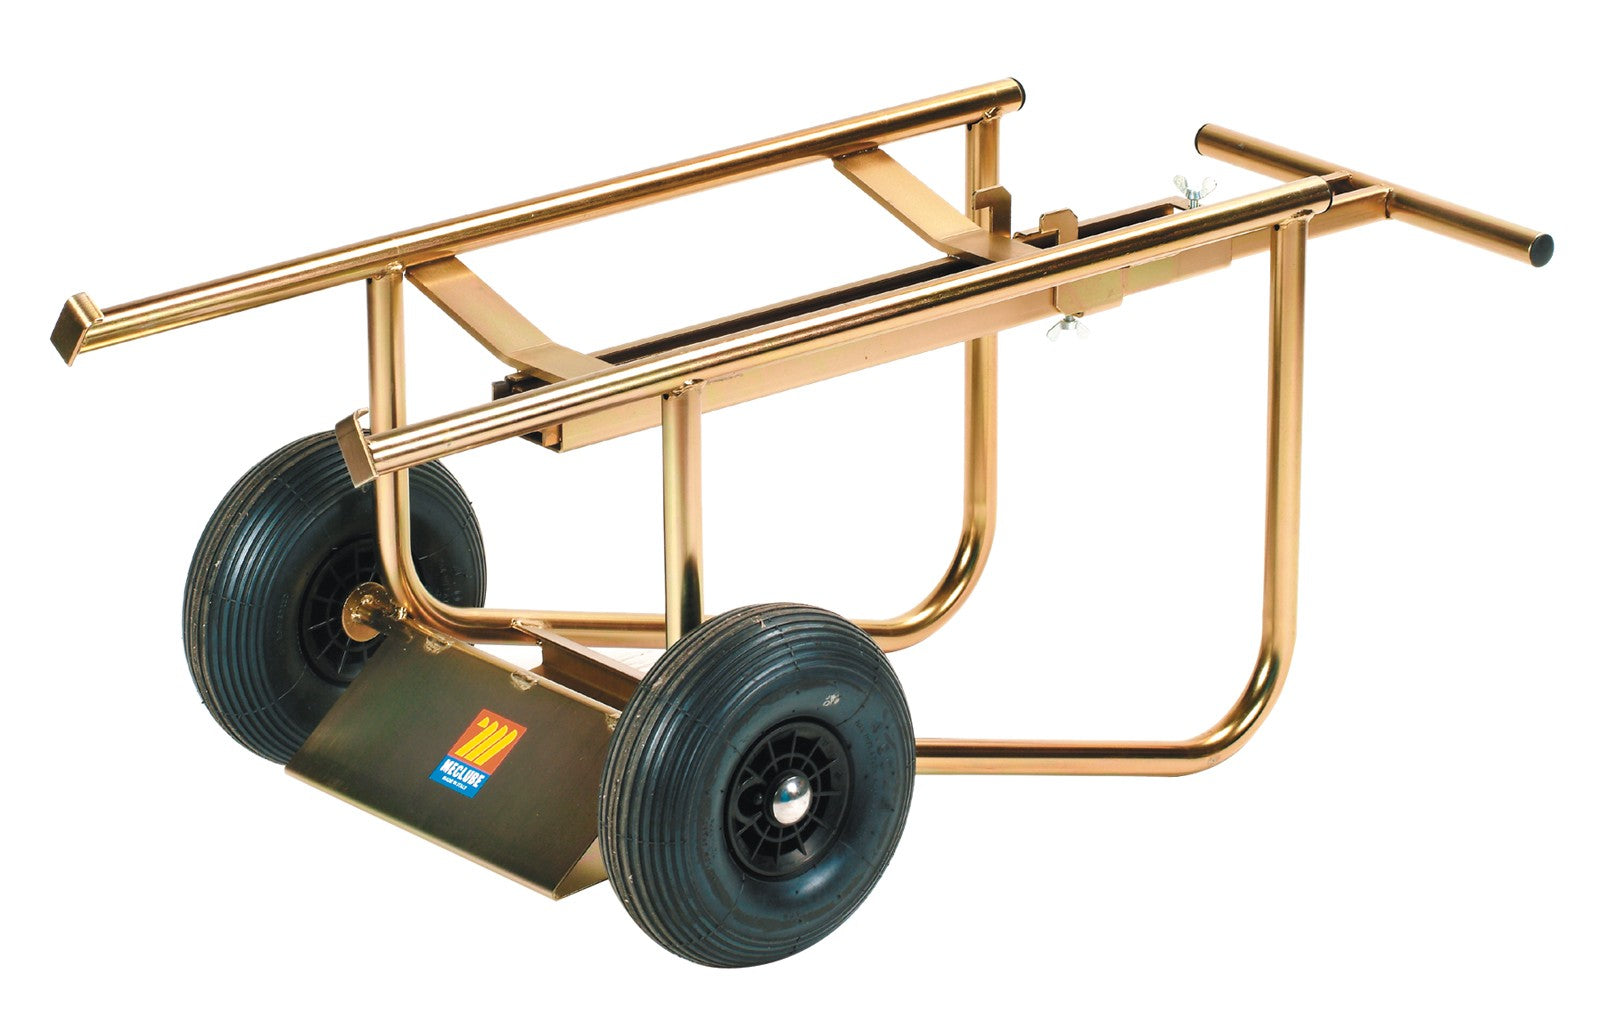 030-1407-000 - Special trolley for 180-220 l barrels